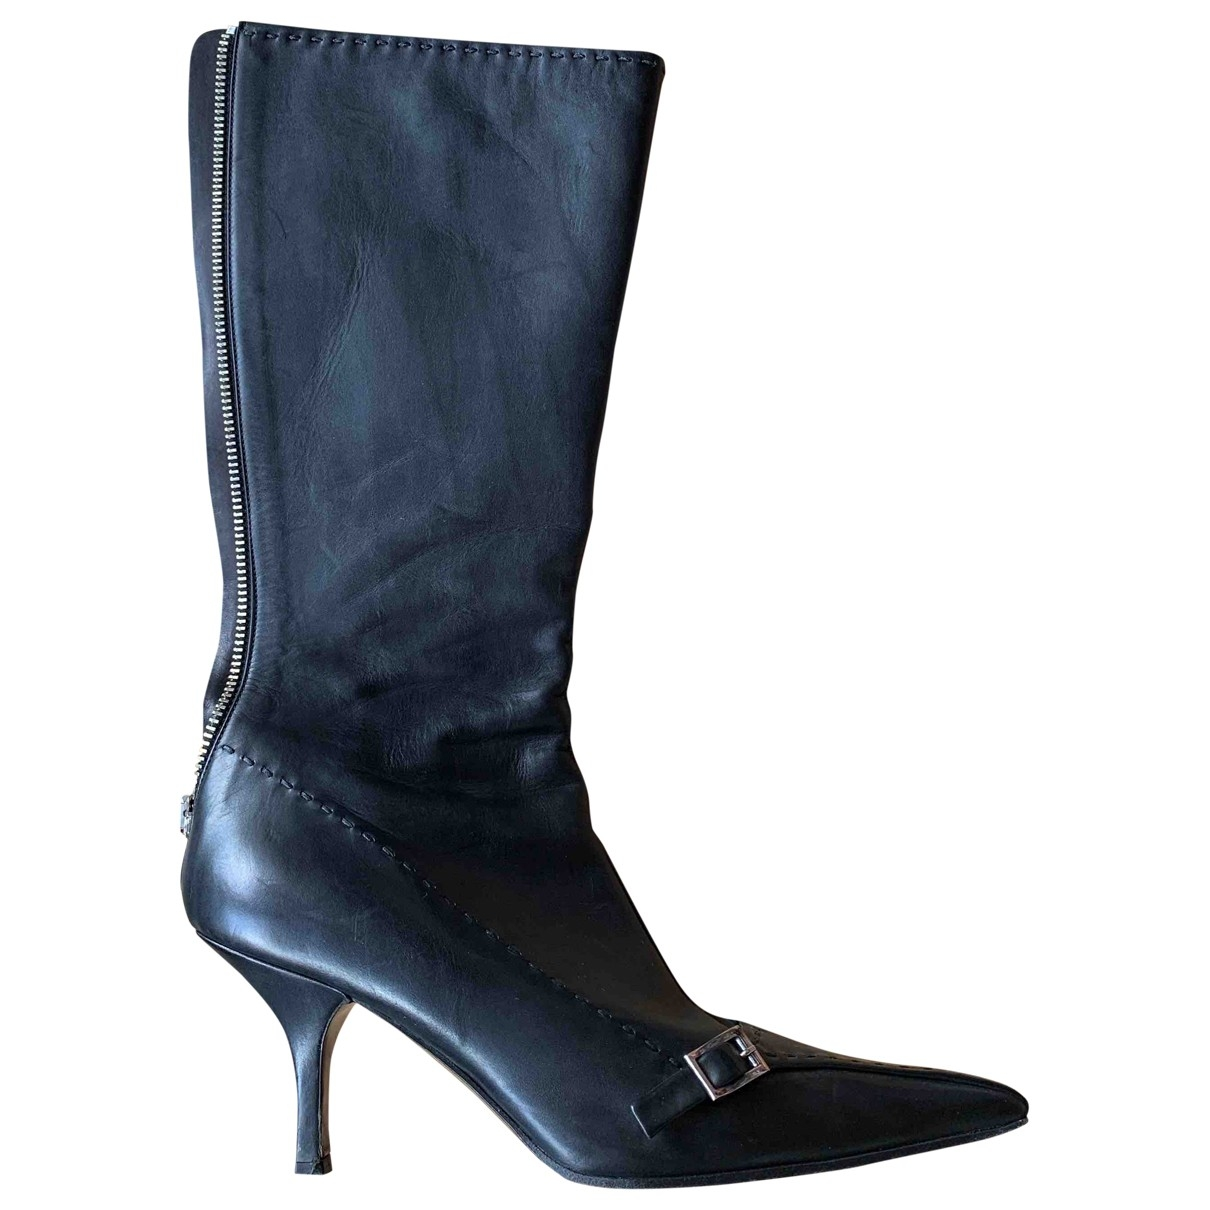 Prada \N Black Leather Boots for Women 38 EU